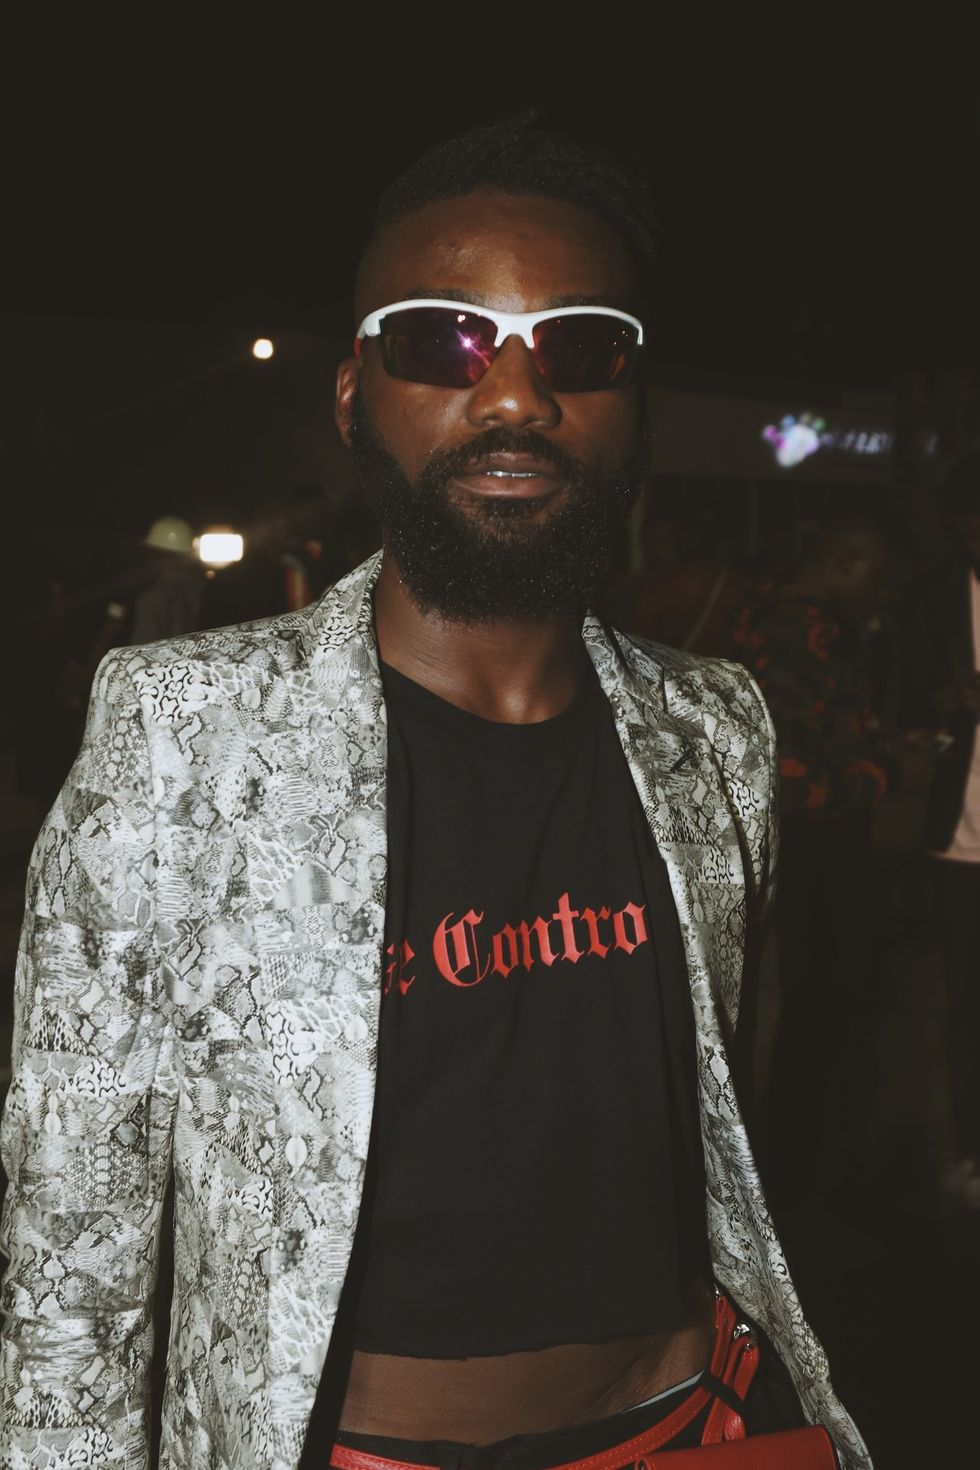 Nigerian man in snakeskin jacket, crop top and wraparound sunglasses at Lagos Fashion Week 2019.